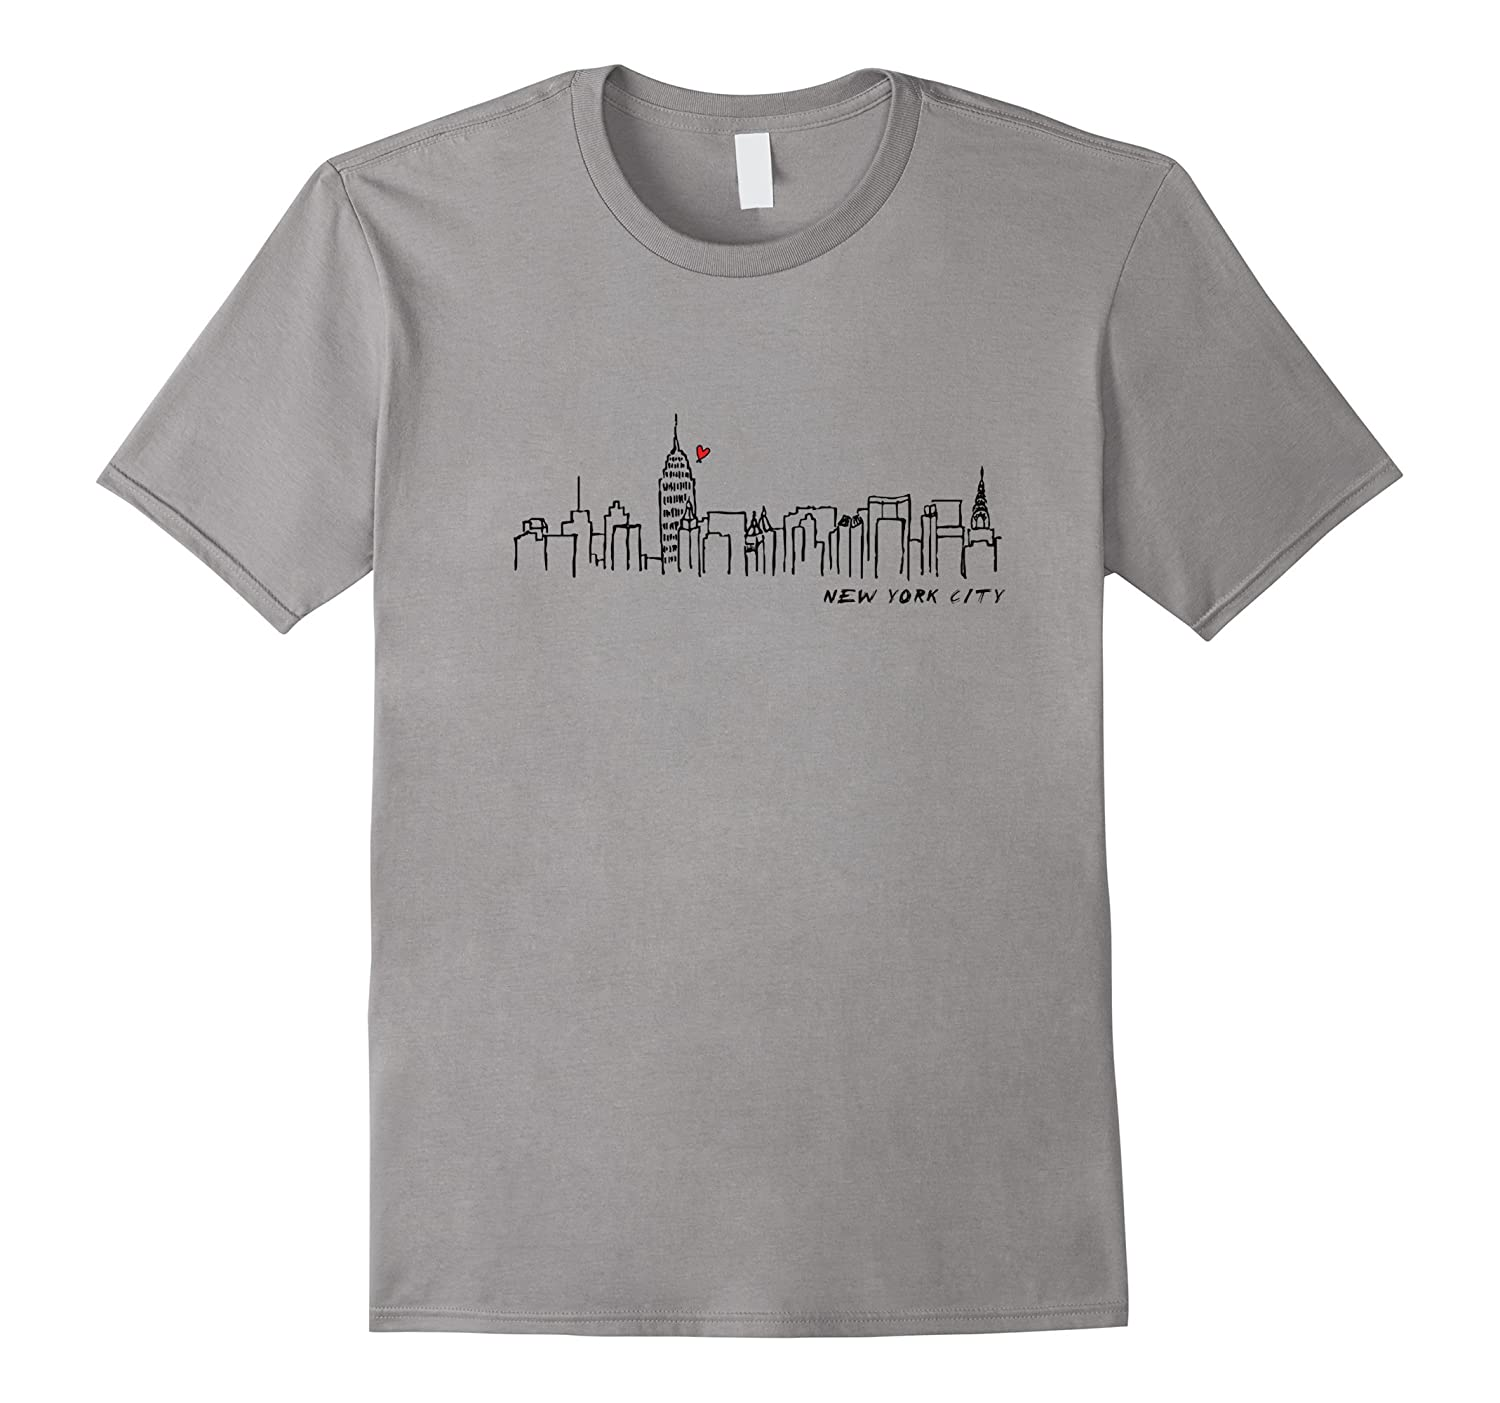 NYC SHIRTS NEW YORK CITY T-SHIRTS Manhattan Skyline Tee-RT